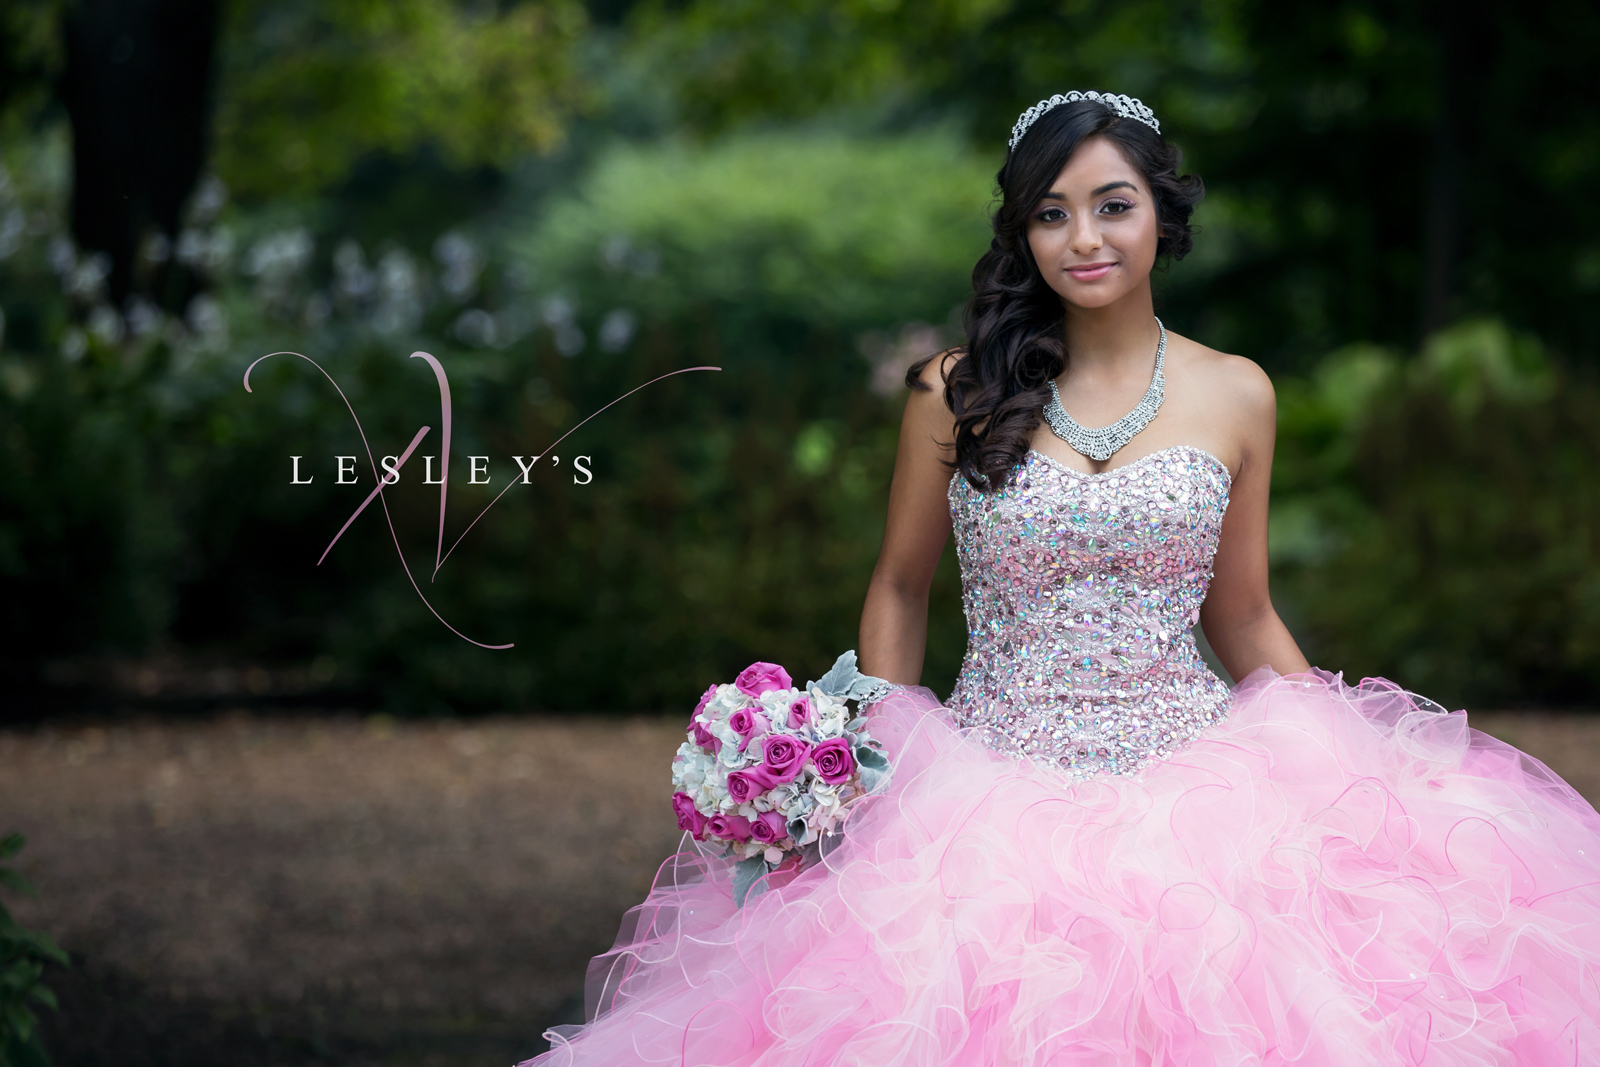 Twinbliss_Photography_Chicago_Weddings_Engagements_Quinceanera_Elgin_Illinois_twins